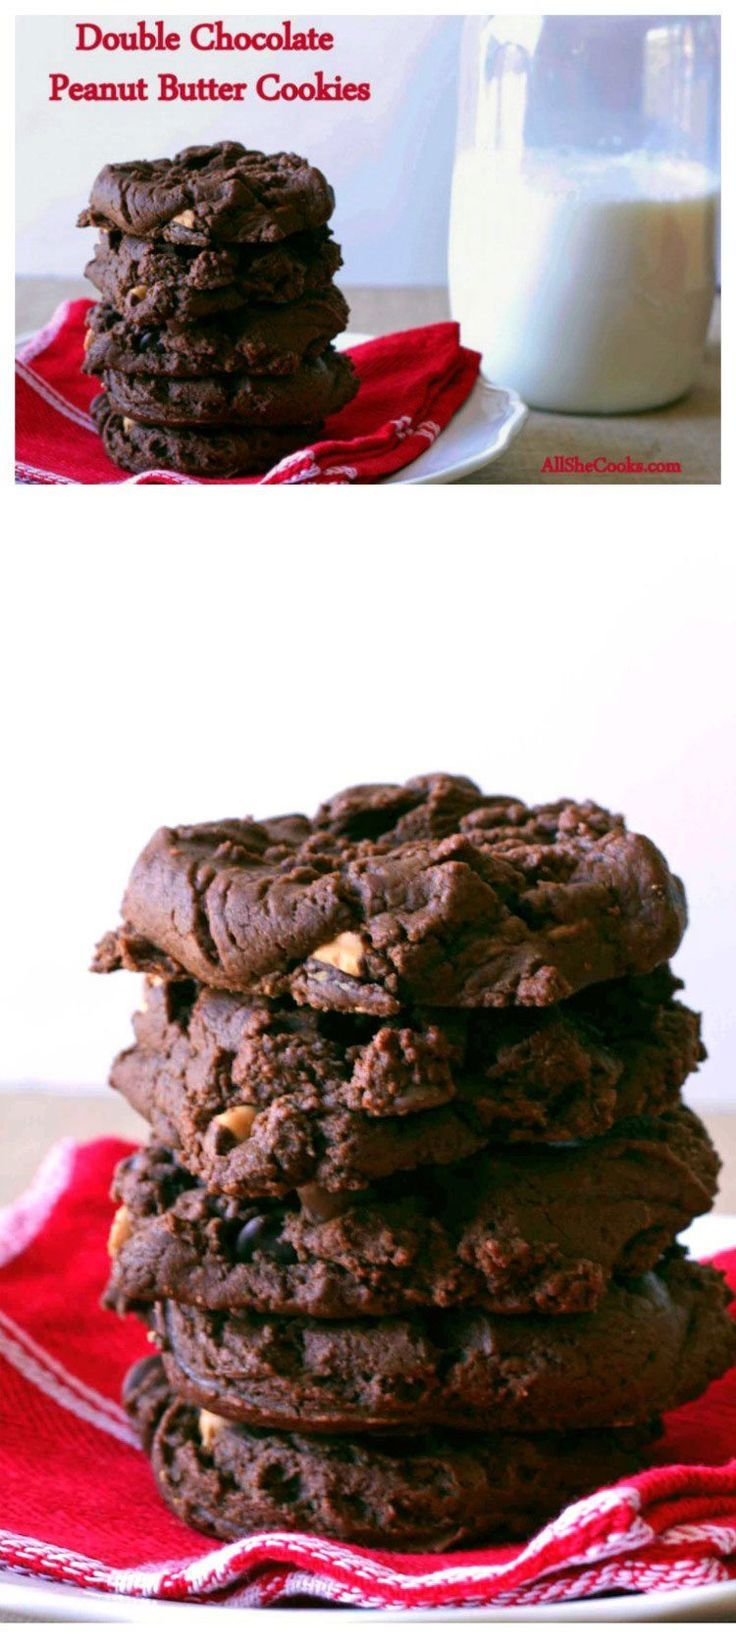 Easy Christmas Cookies Recipes = Double Chocolate Peanut Butter Cookies